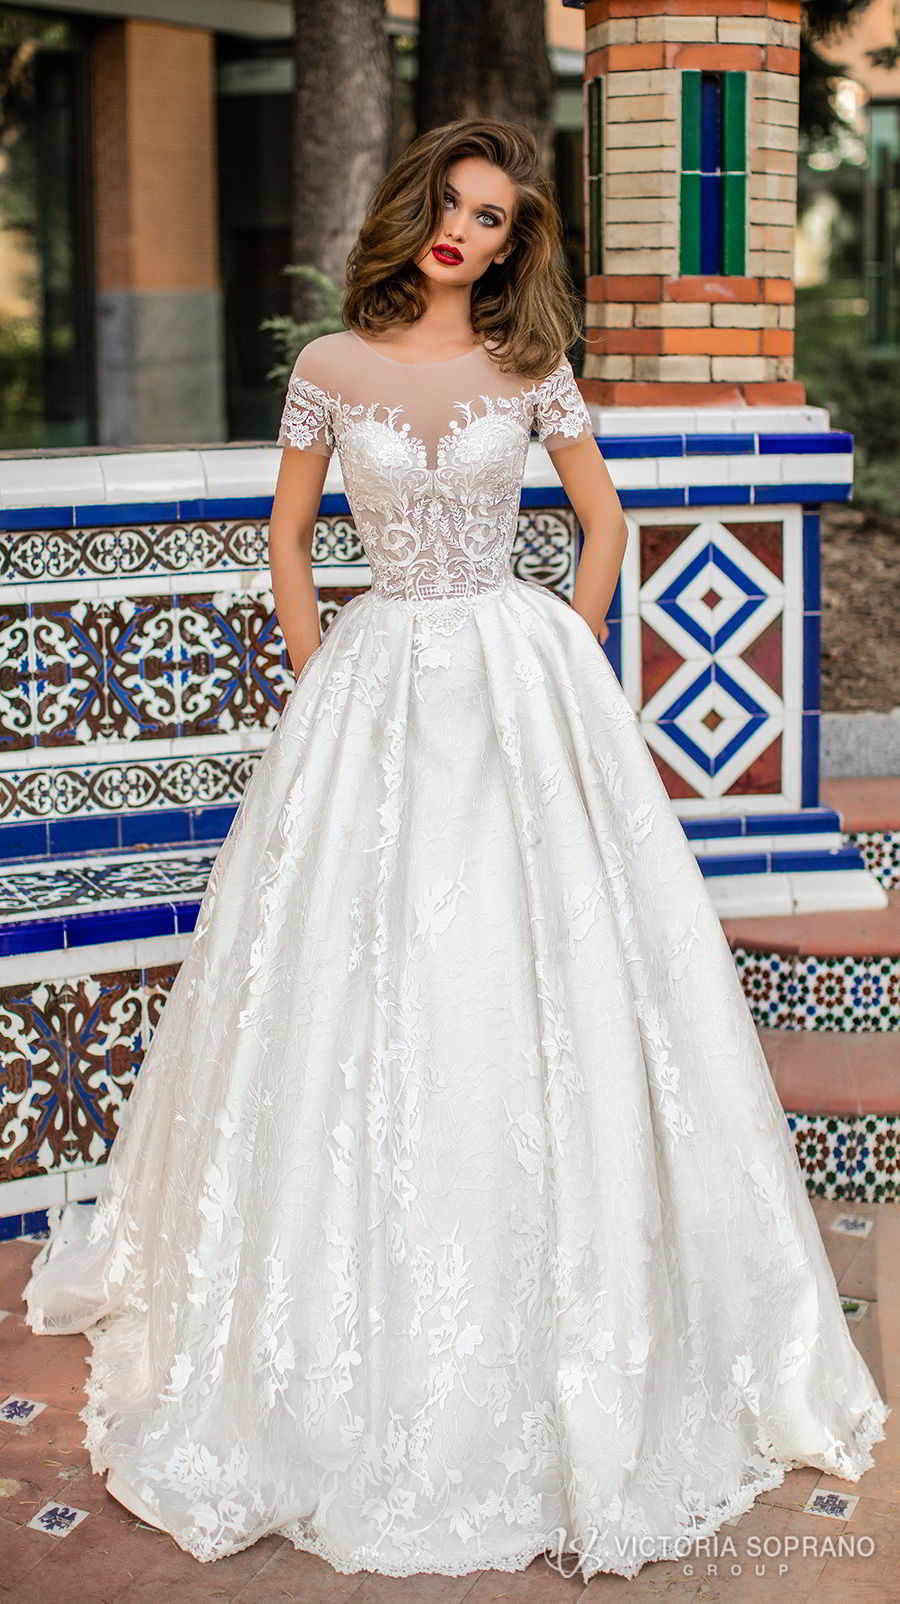 victoria soprano 2018 bridal short sleeves illusion jewel sweetheart neckline heavily embellished bodice romantic a line wedding dress with pockets sheer lace back chapel train (vivian) mv